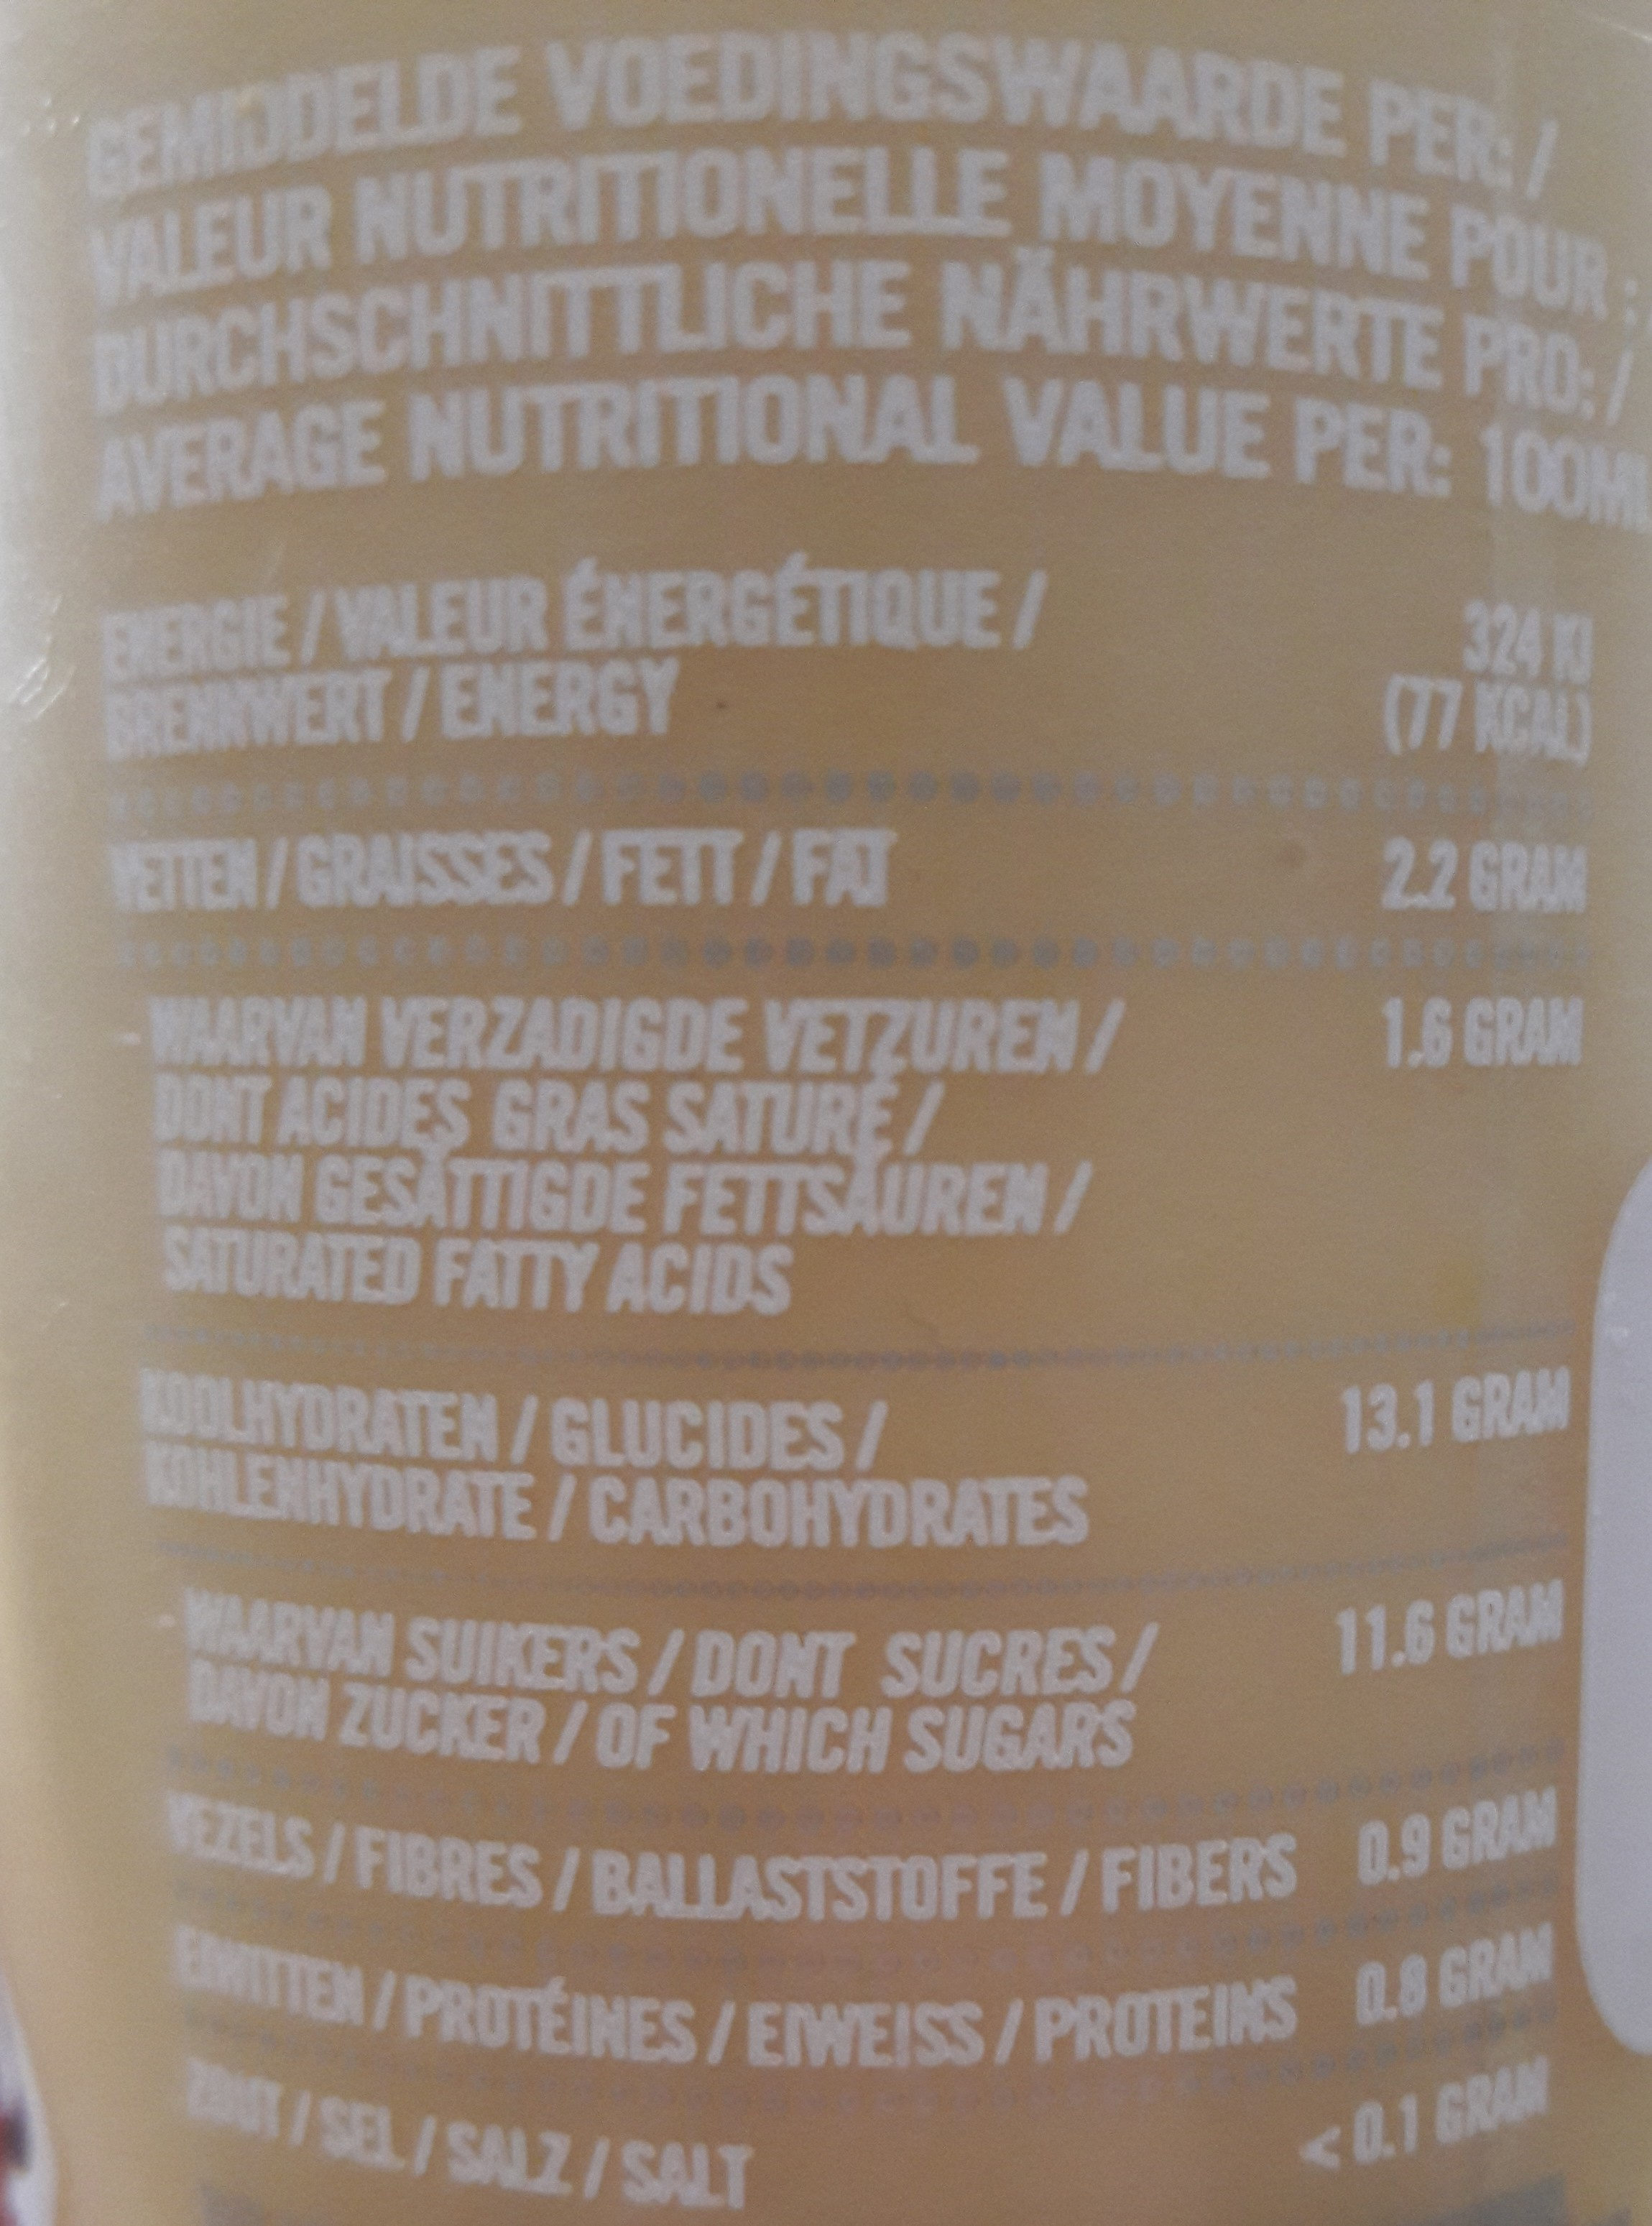 Smoothie ananas & coco - Nutrition facts - fr